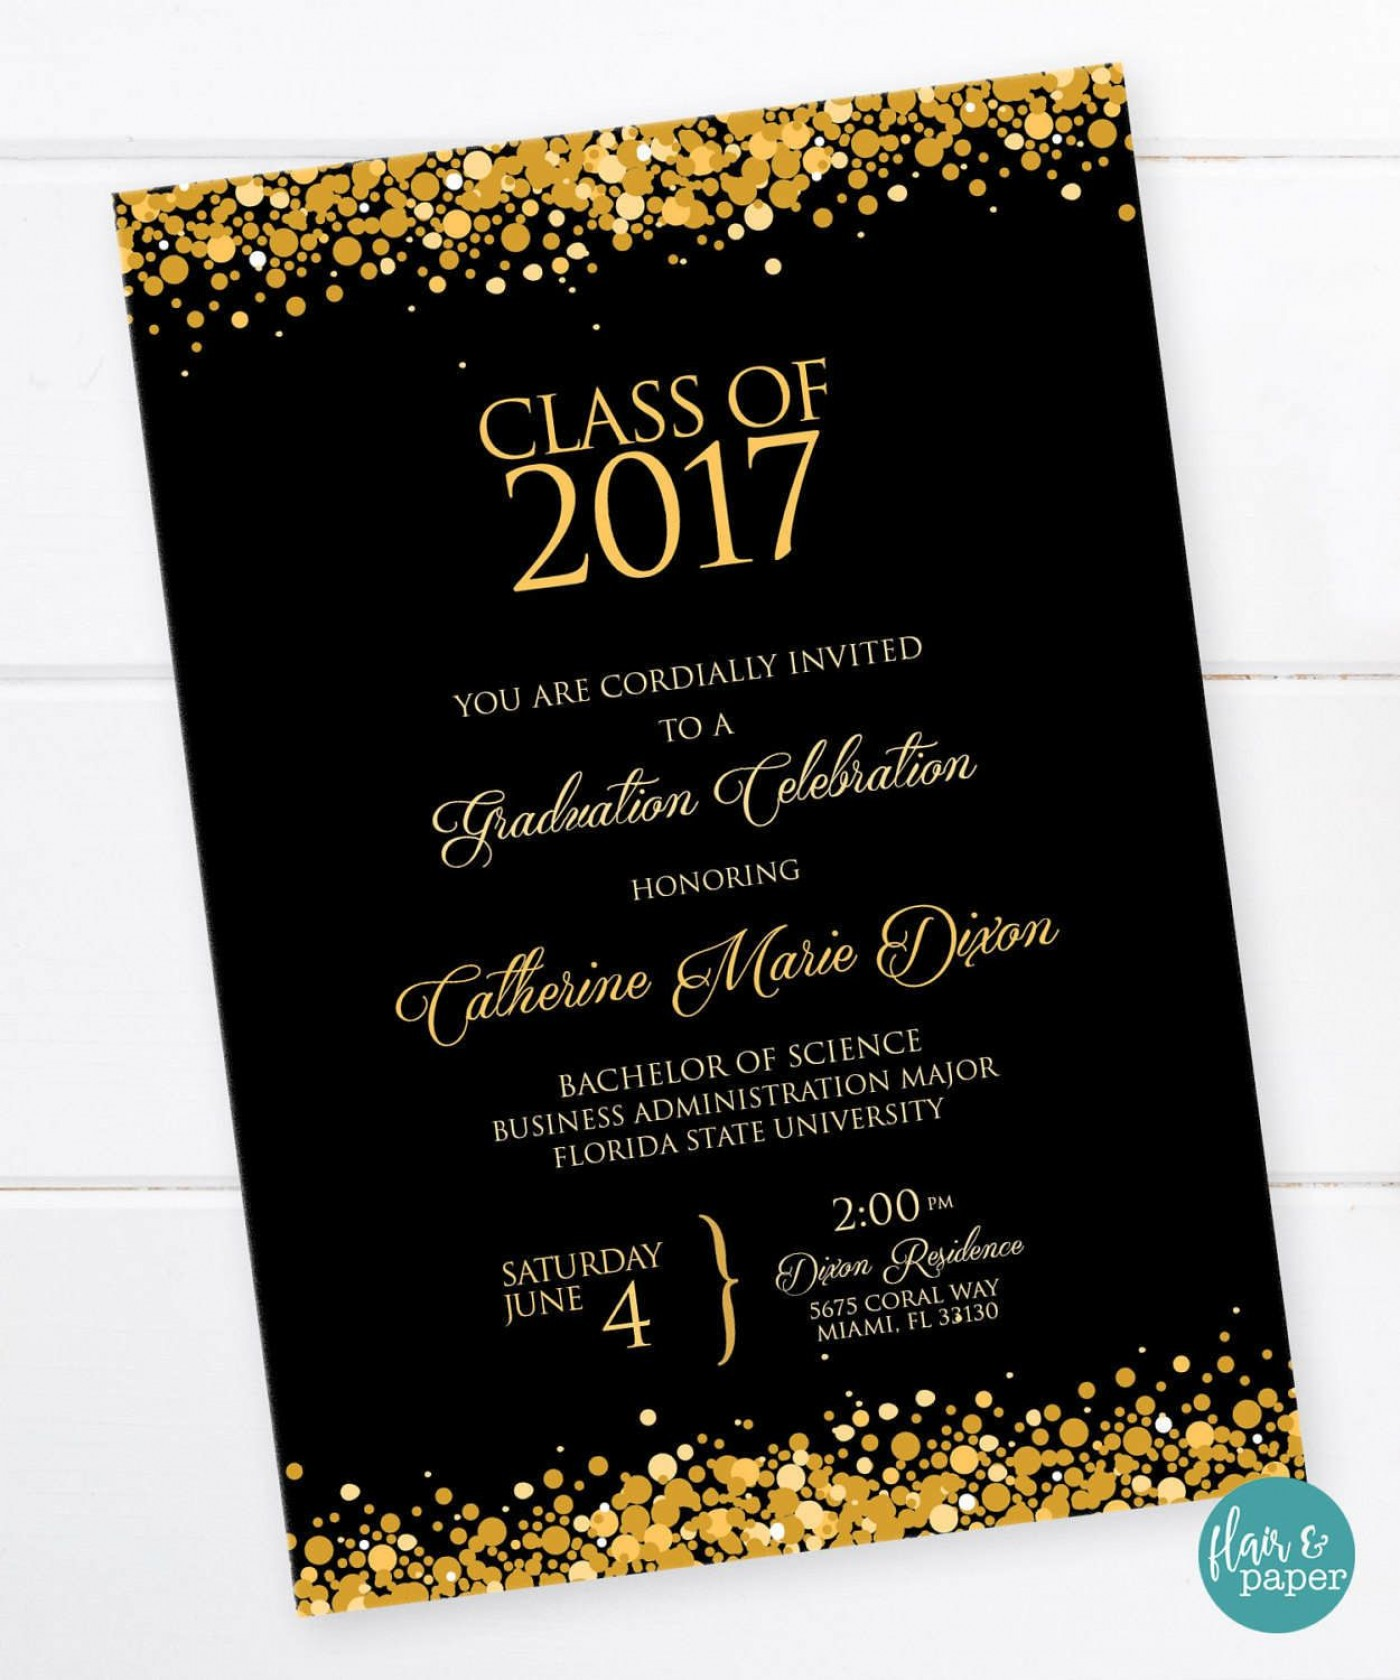 001 Shocking College Graduation Invitation Template Idea  Free For Word Party1400